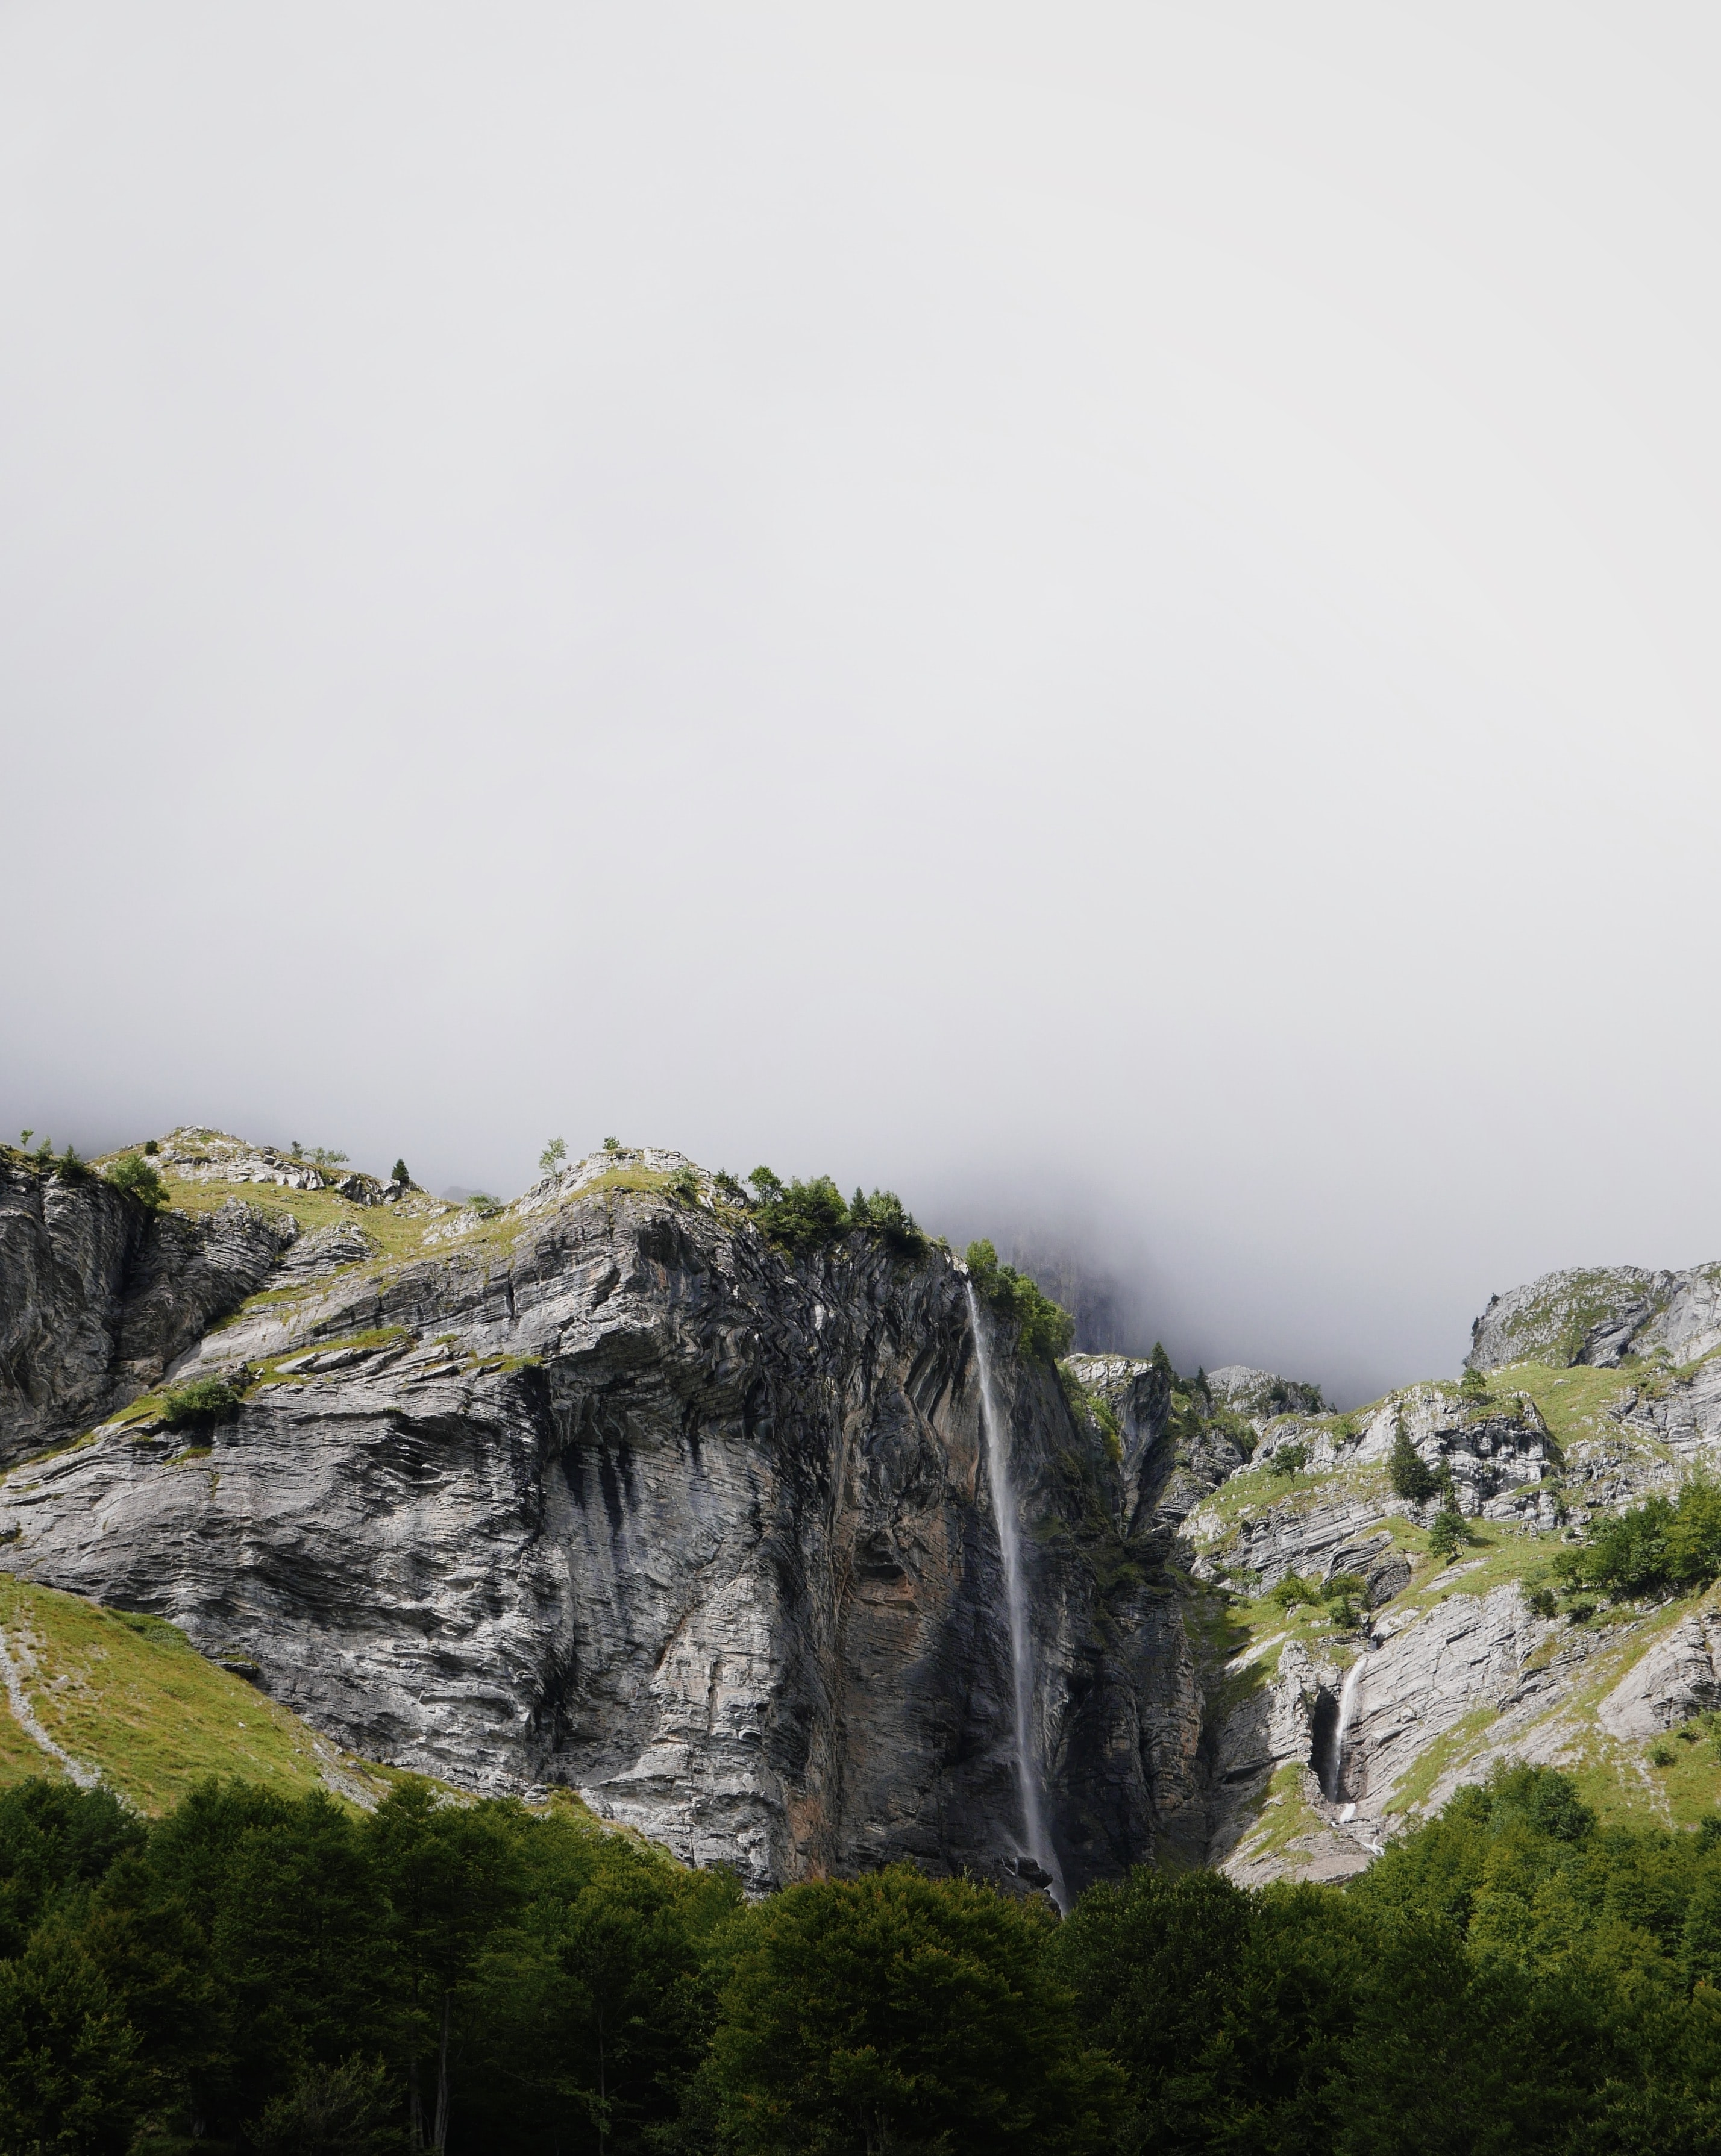 mountains covered with green trees under cloudy sky during daytime